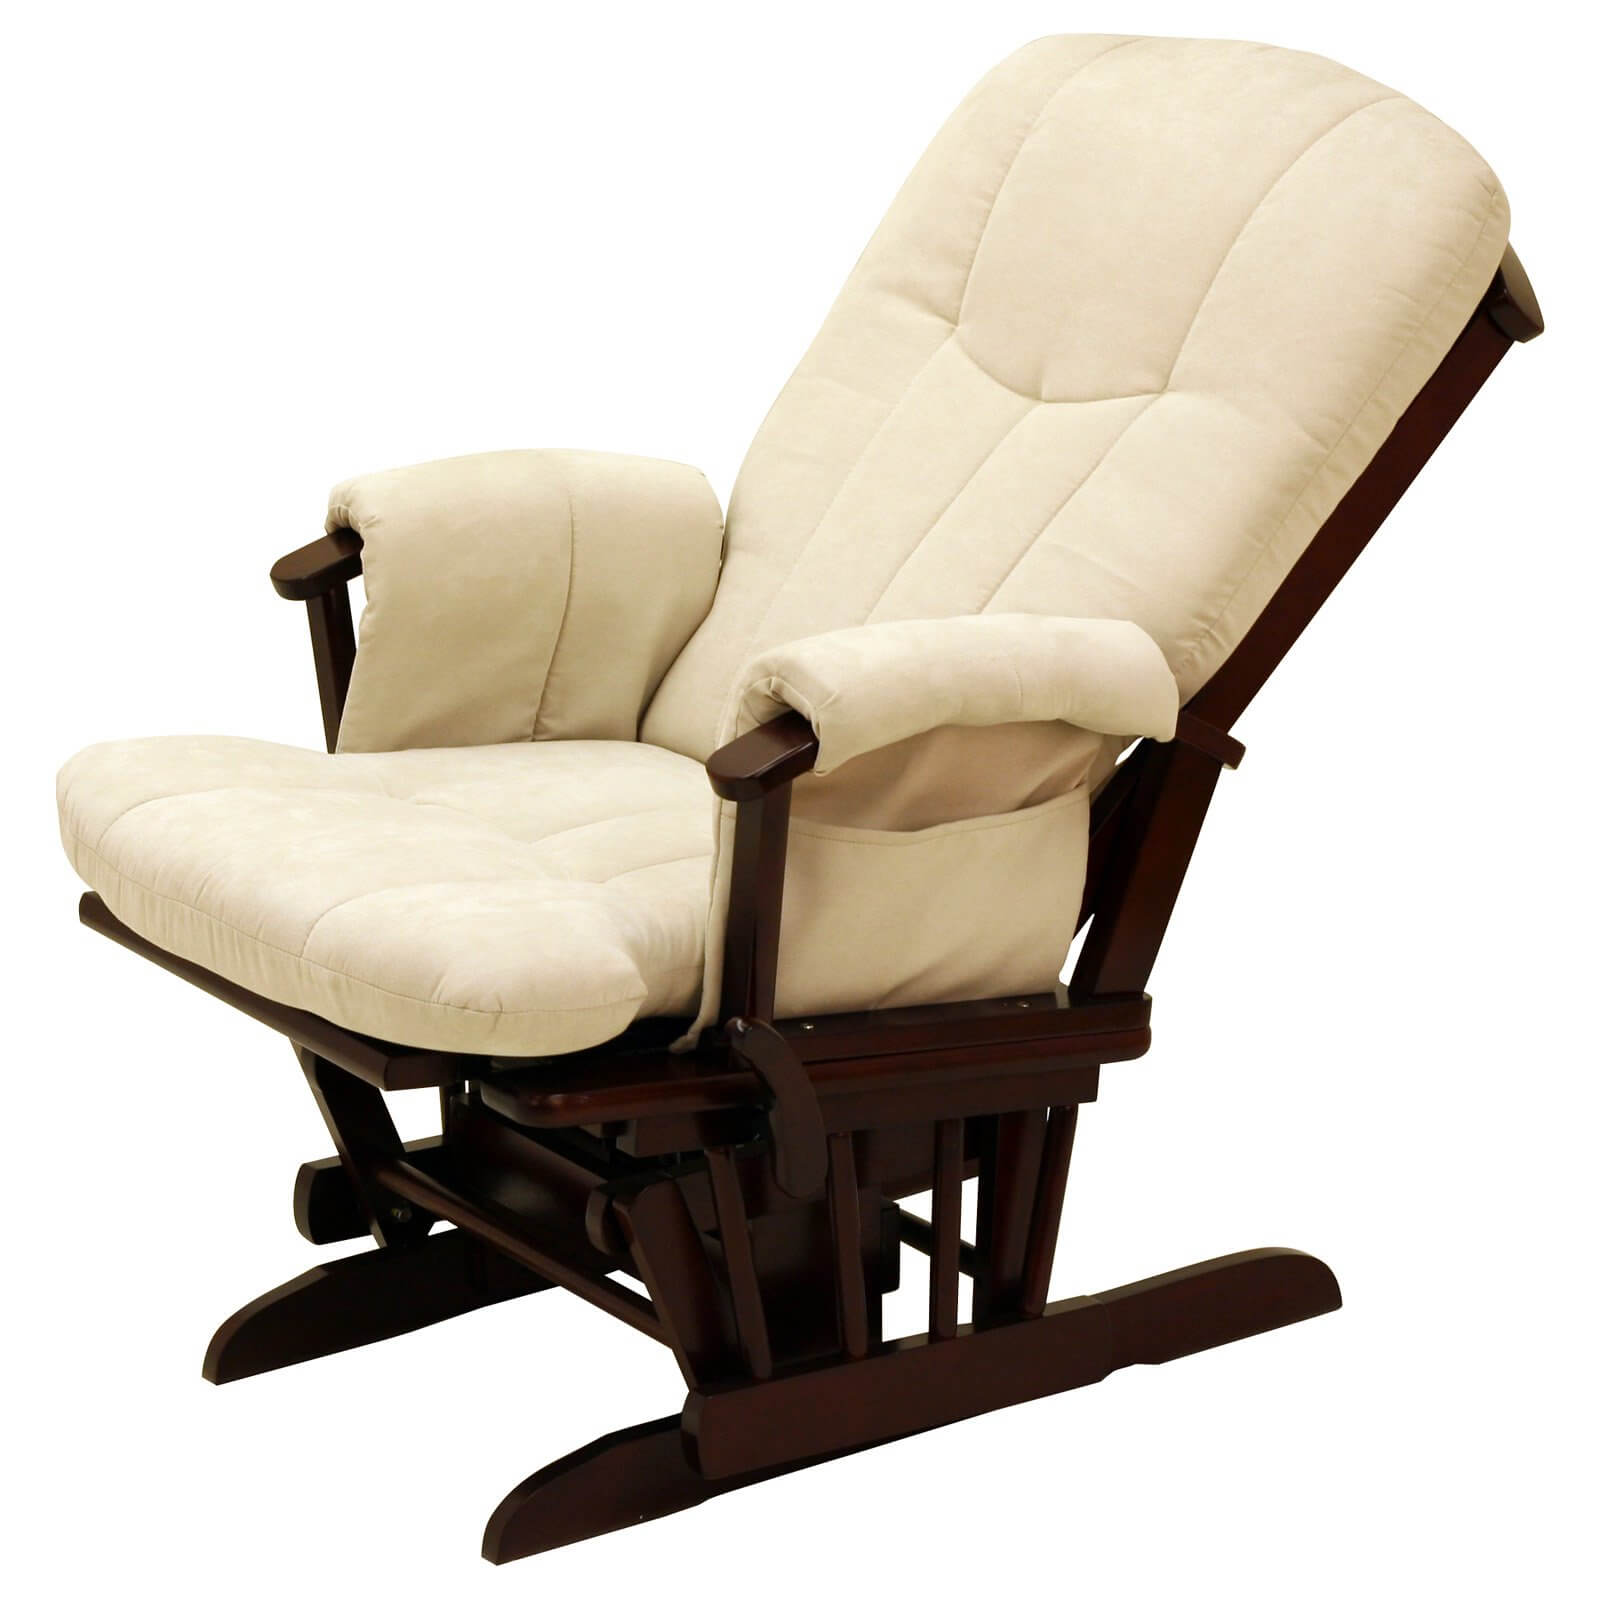 This highly reclined glider features plush beige cushioning over a cherry wood frame. The sloped back provides a more relaxed seating position.